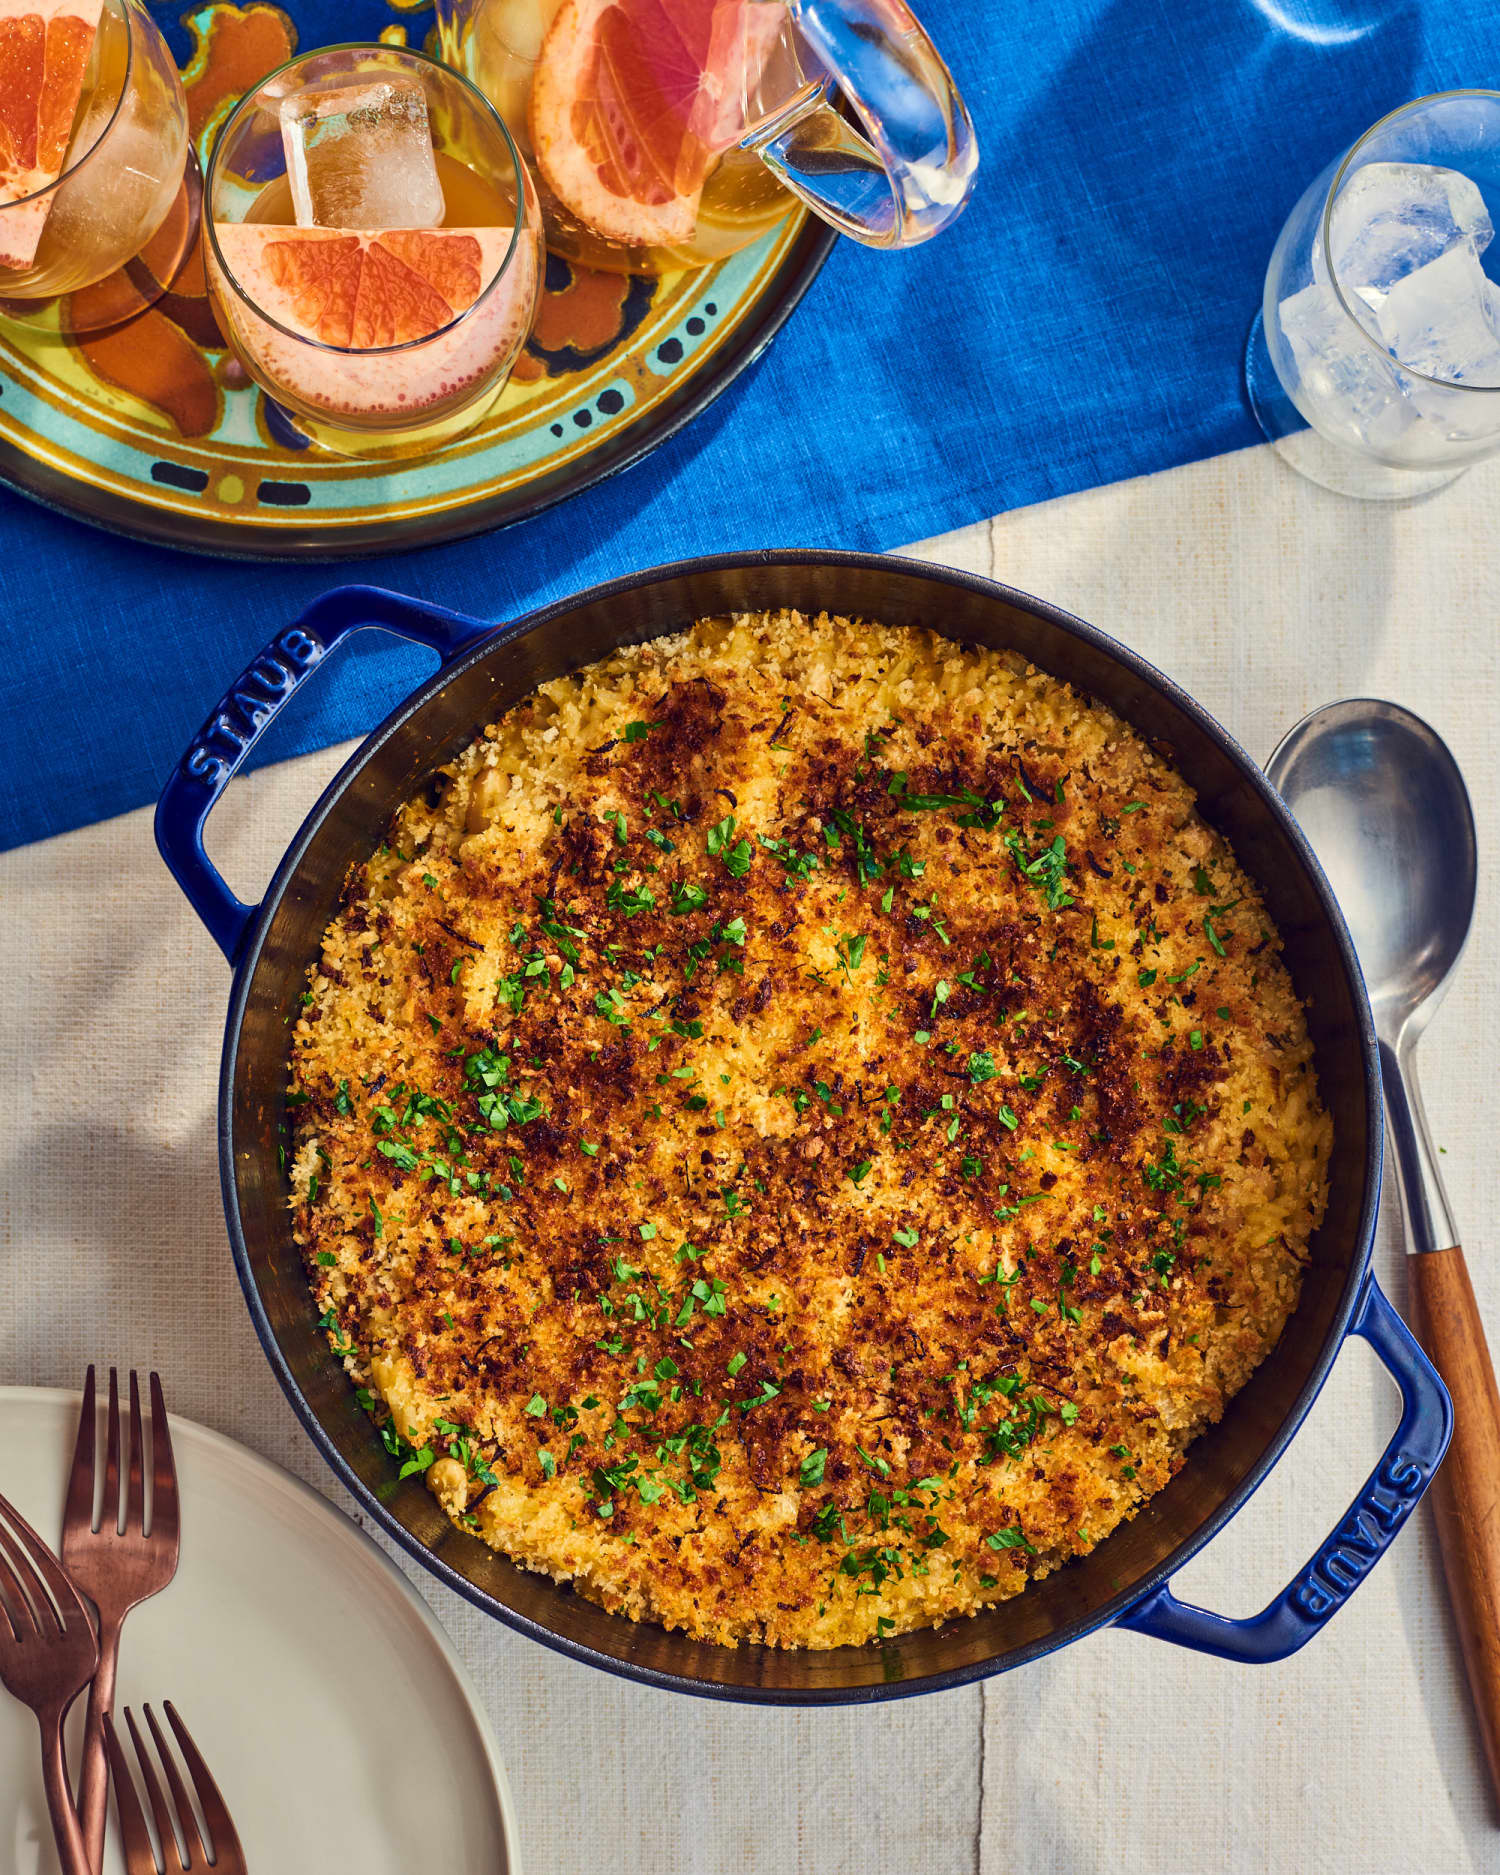 Crispy, Creamy Baked Risotto Is a No-Stress, Flavor-Packed Win